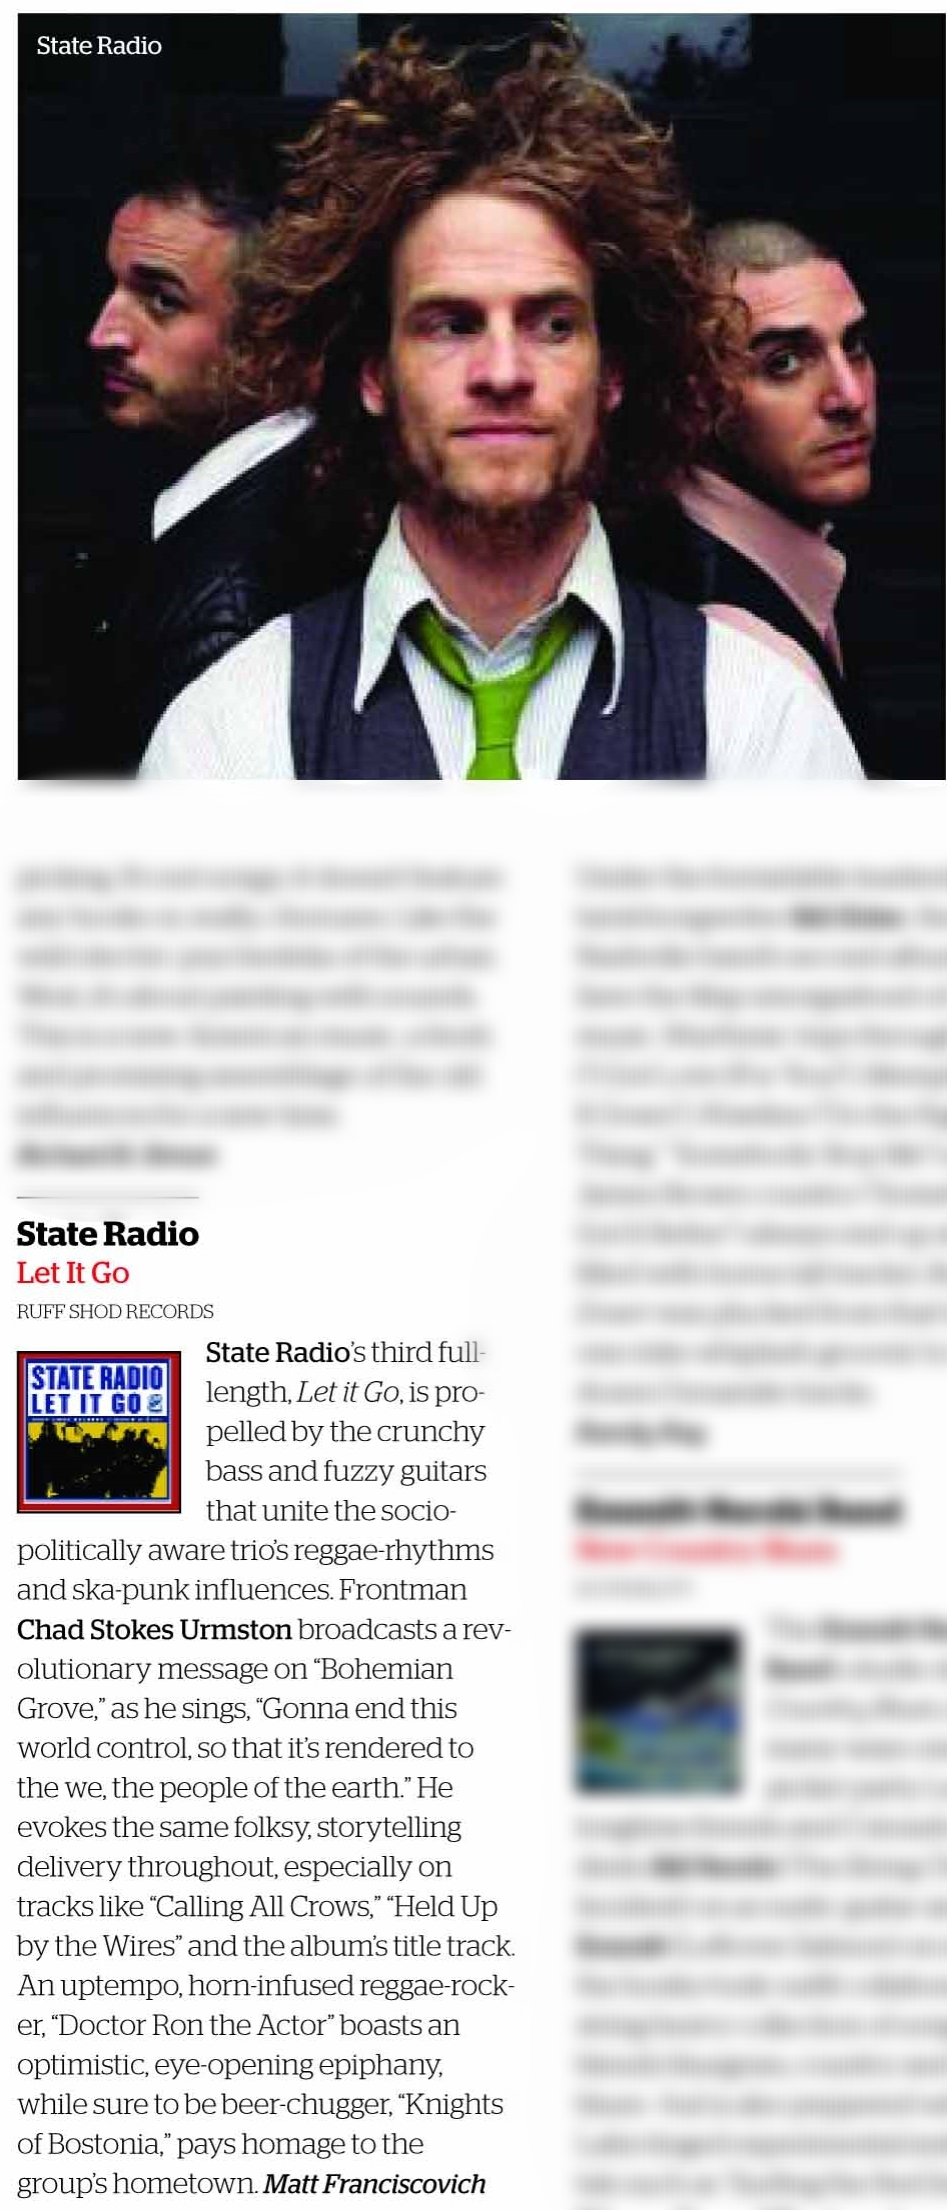 Album review: State Radio